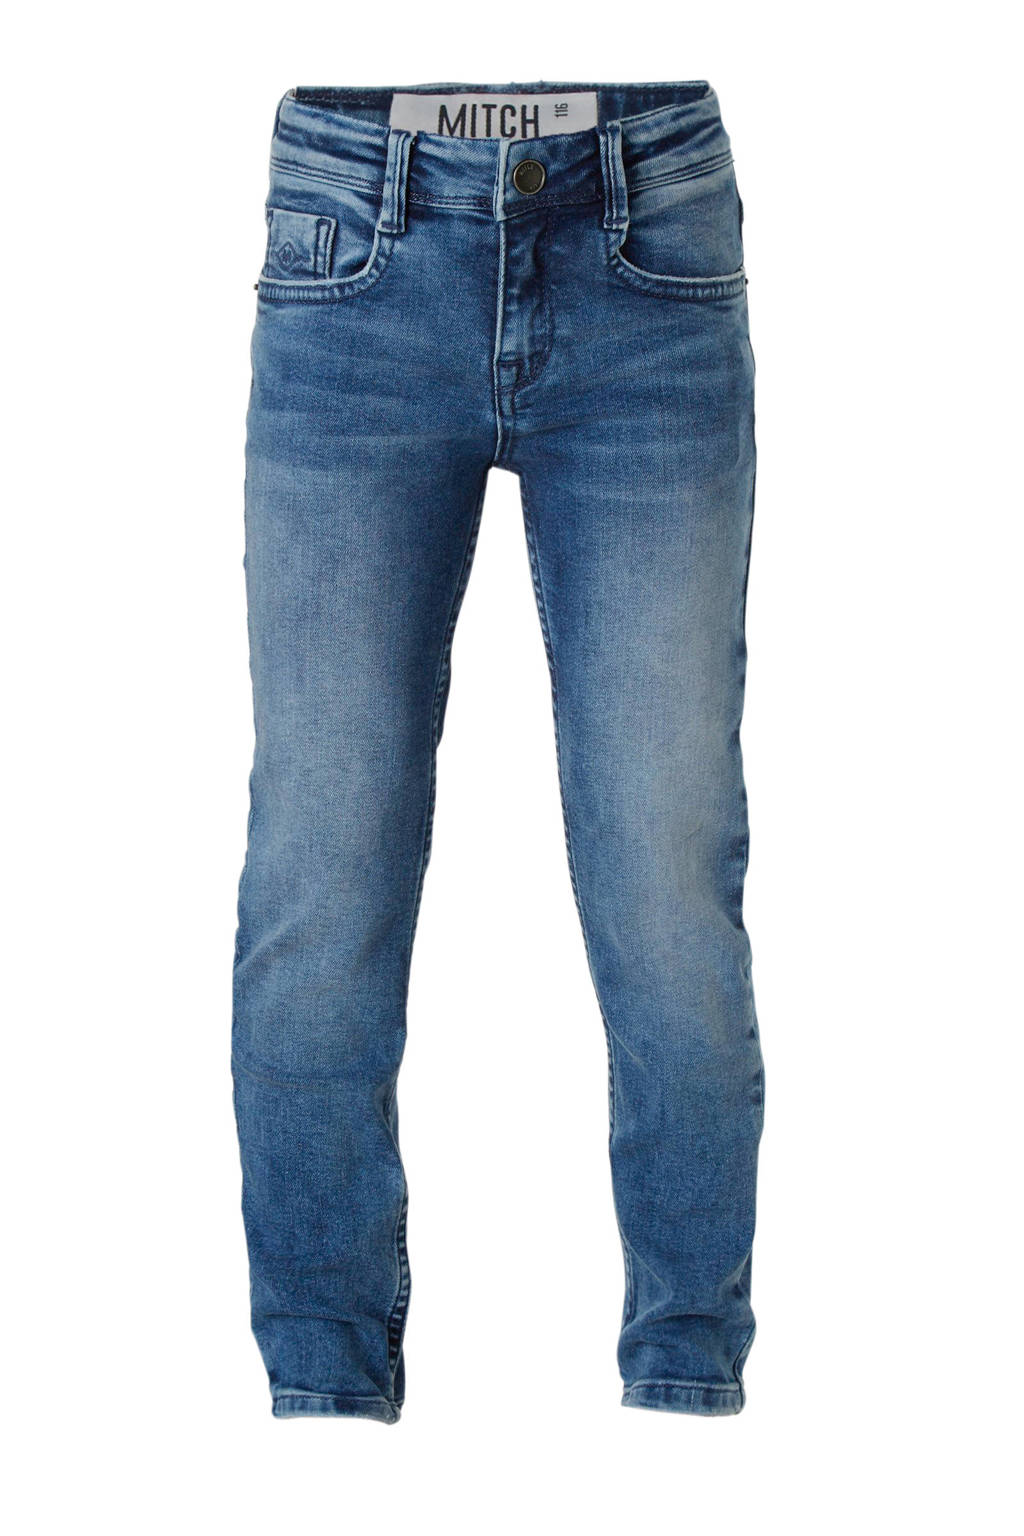 Mitch regular fit jeans Ocean, Blauw